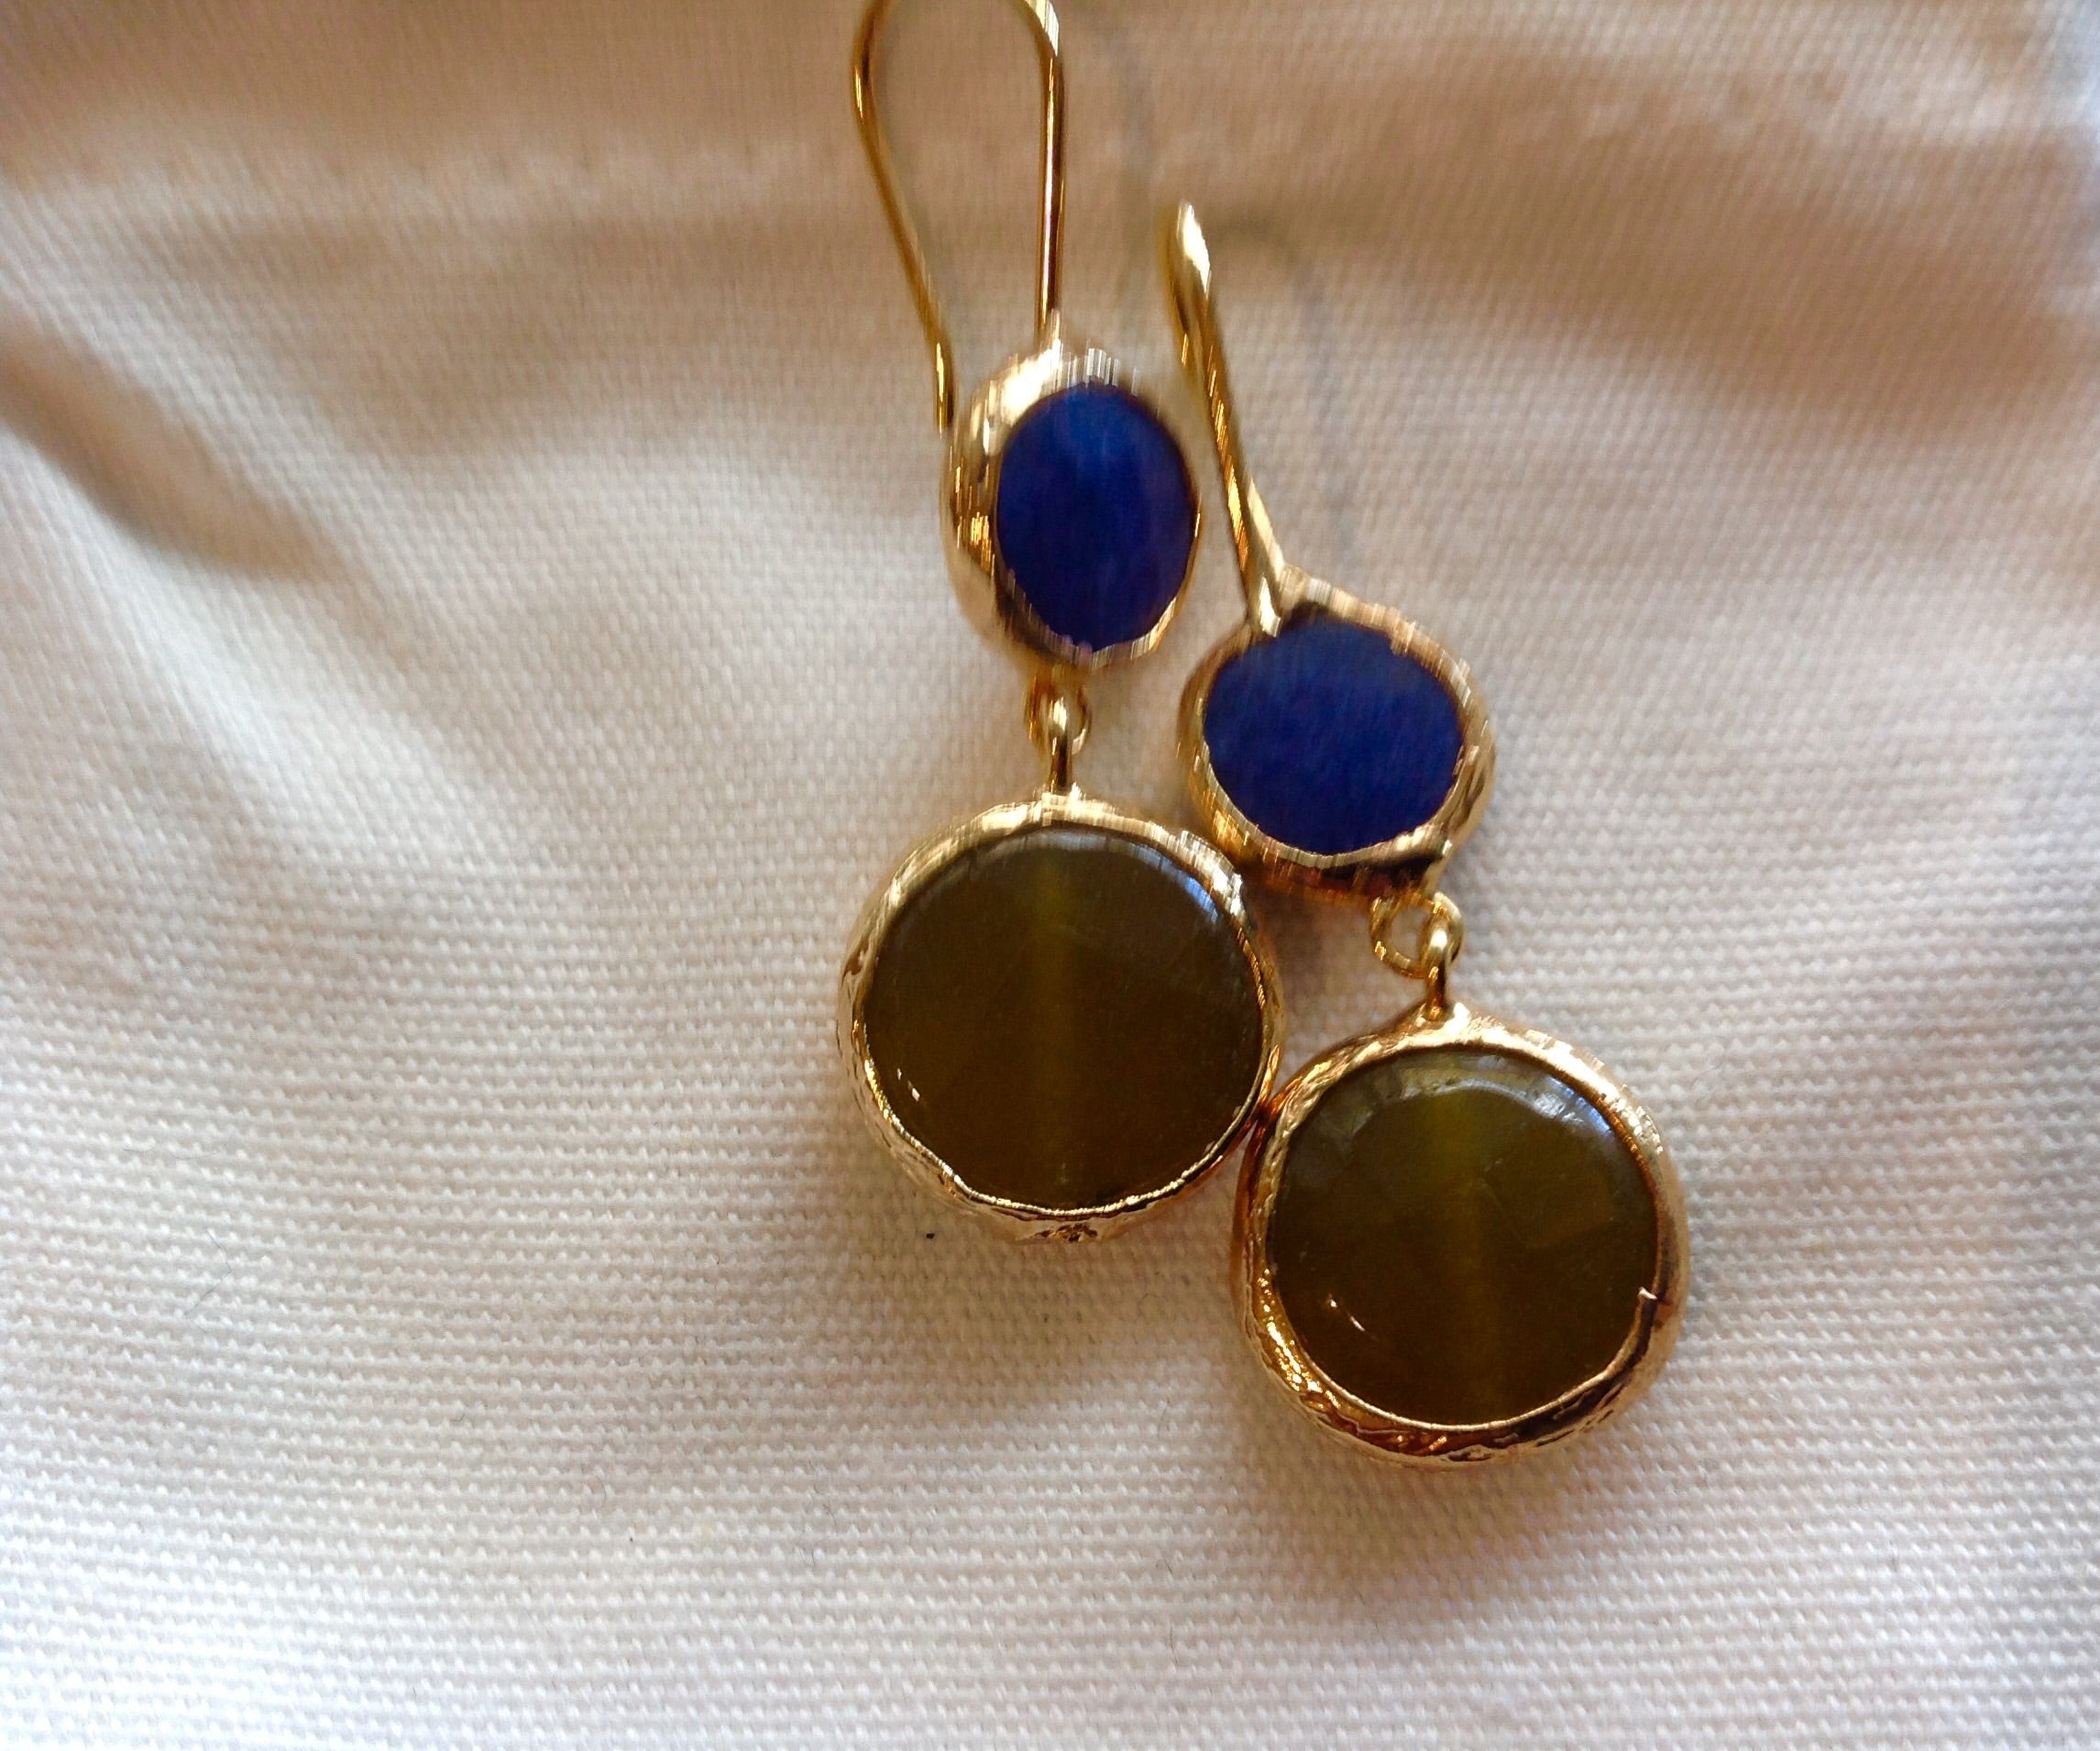 HANDMADE DOUBLE DROP EARRINGS - BLUE/LIME COLOURED STONE